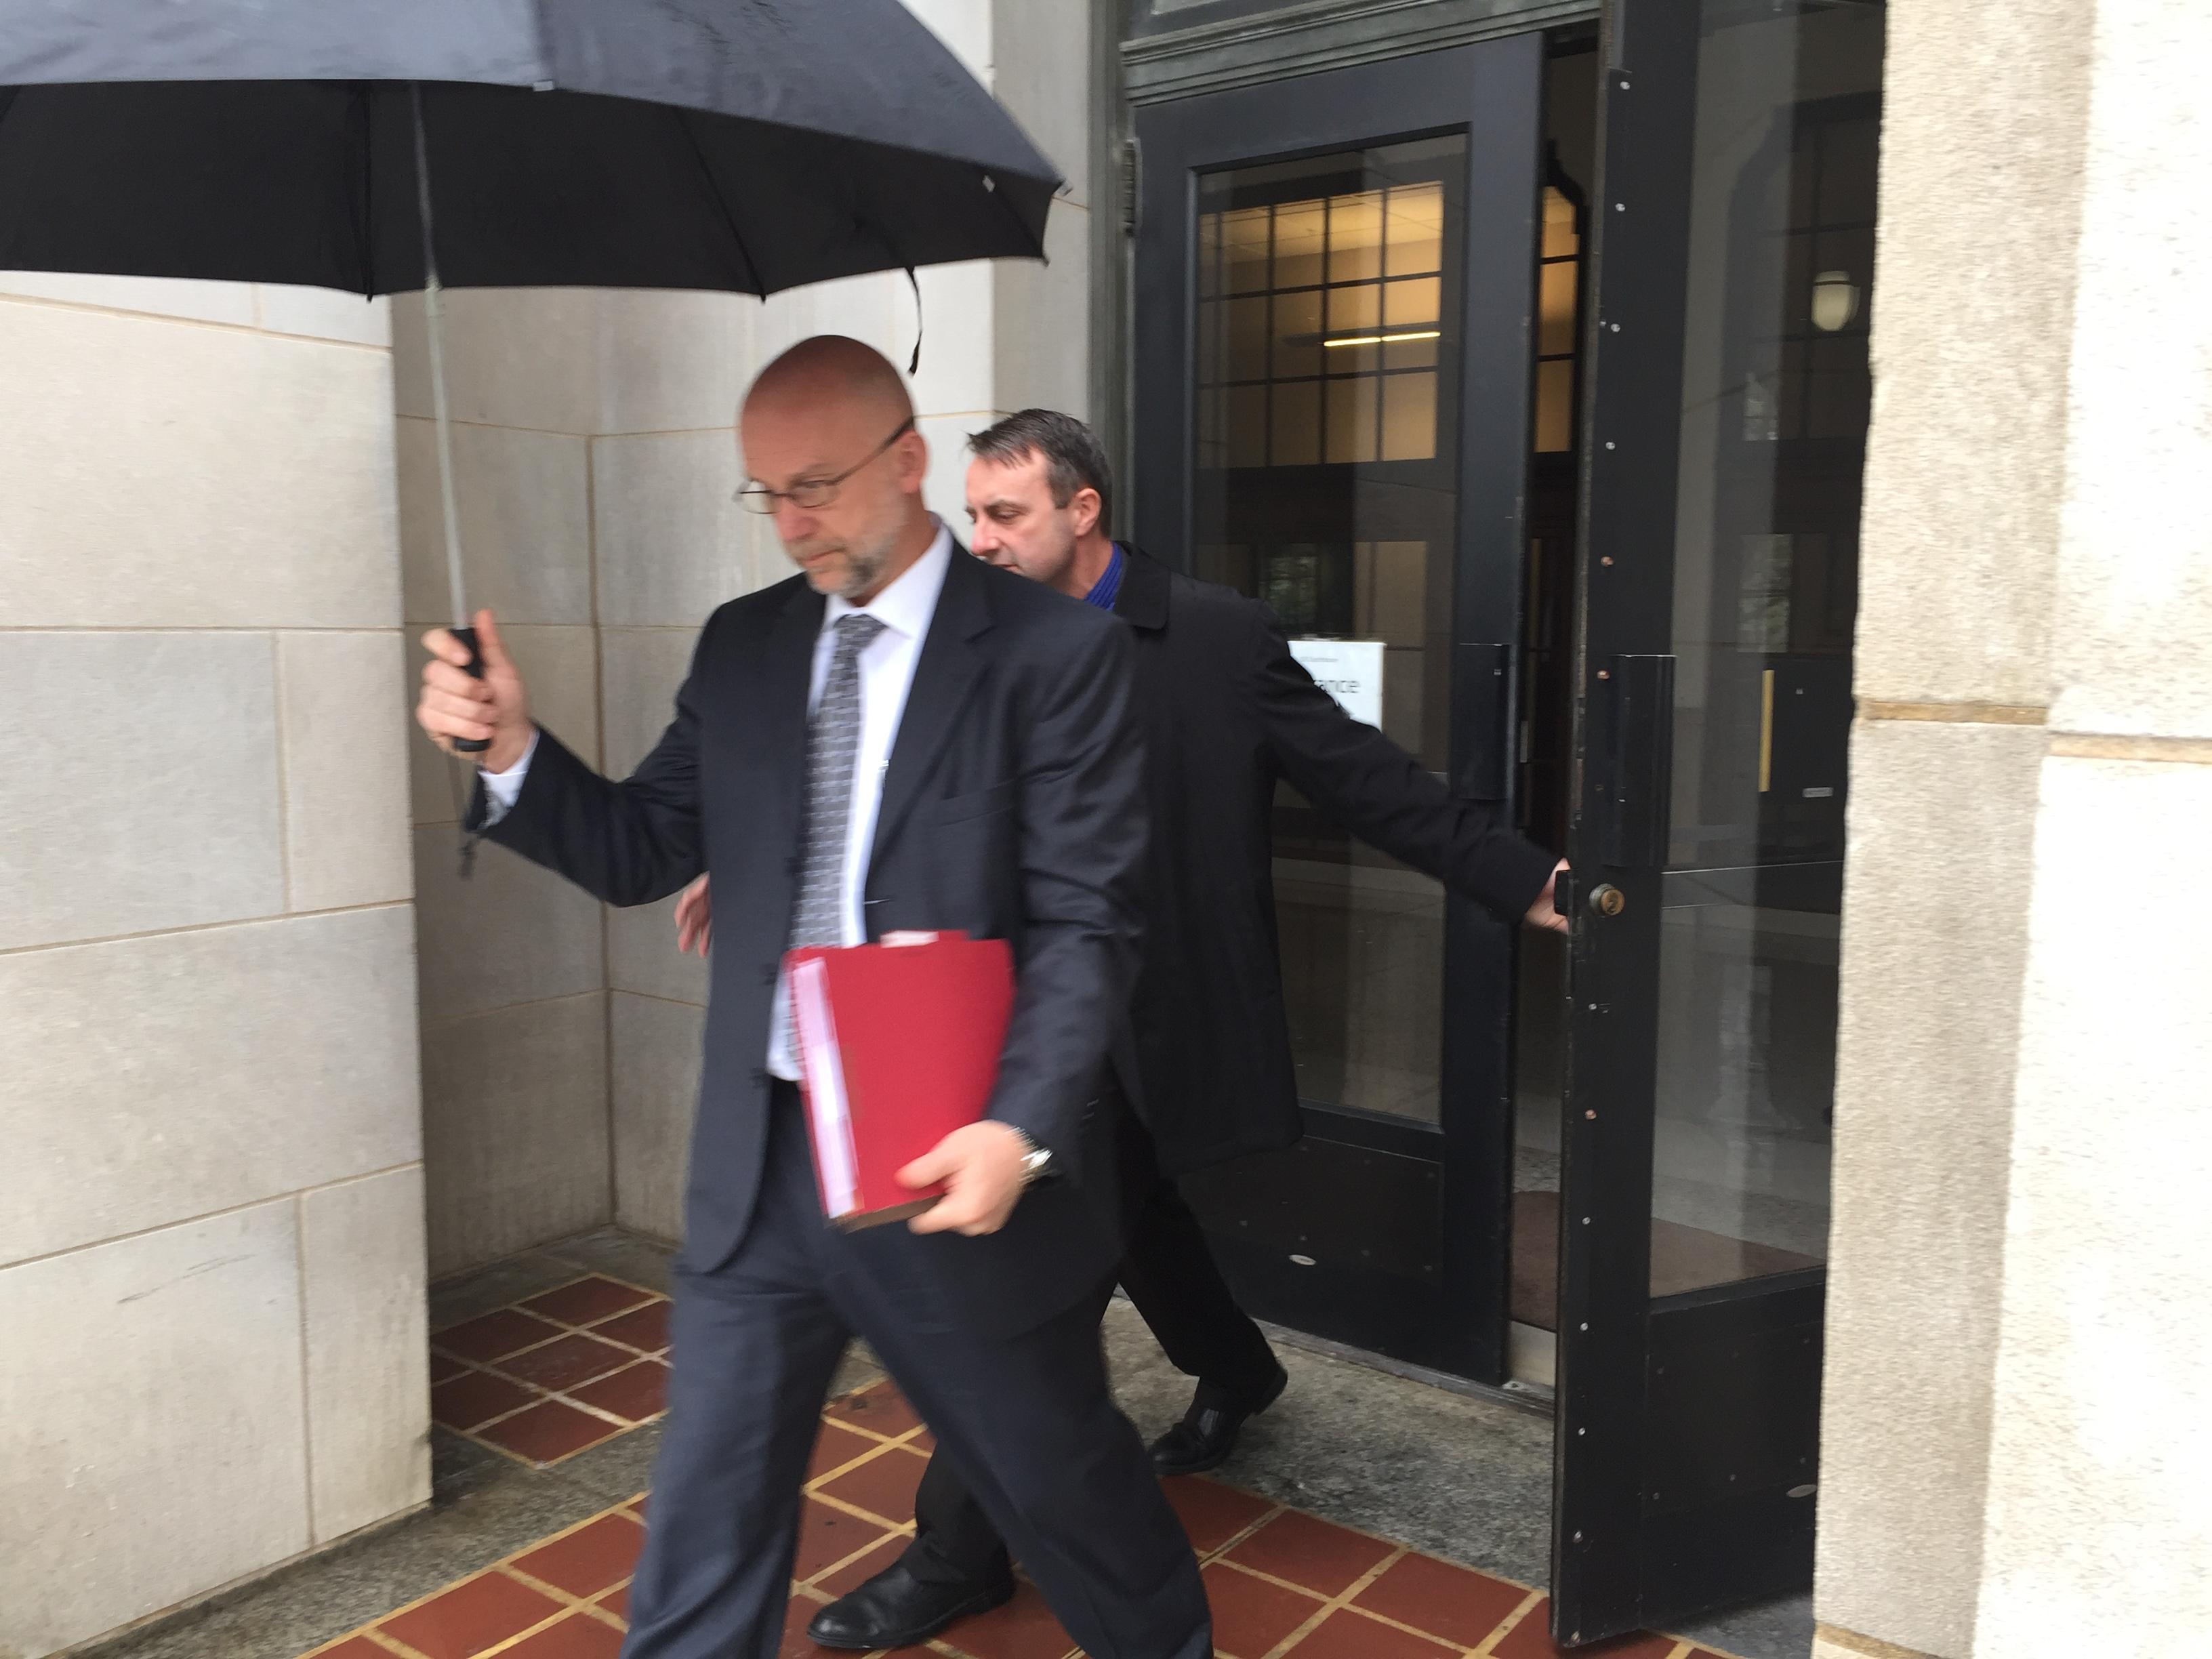 Michael Greene leaving federal court on Monday, April 23, 2018.{ } (Photo credit: WLOS Staff)